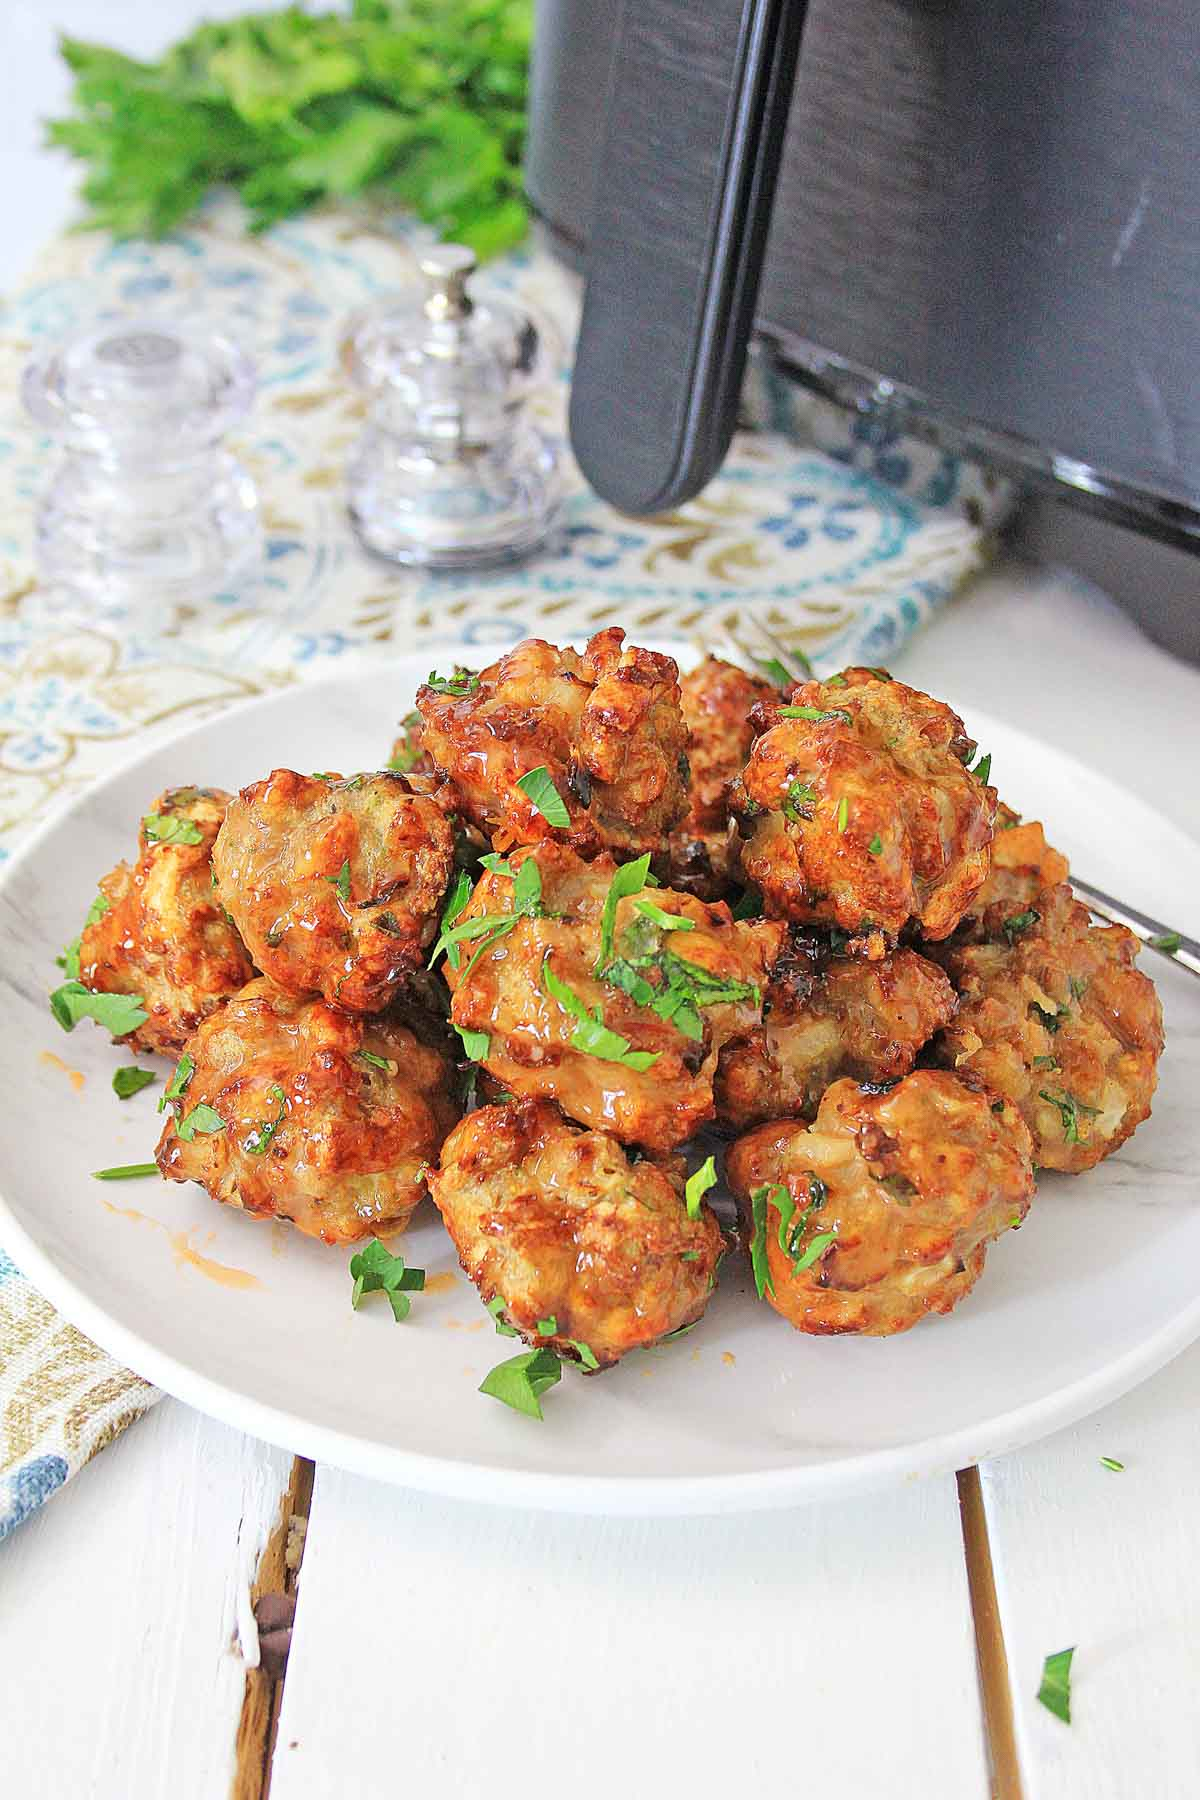 Air fried chicken meatballs on a plate with a Bang Bang sauce and topped with garnish.